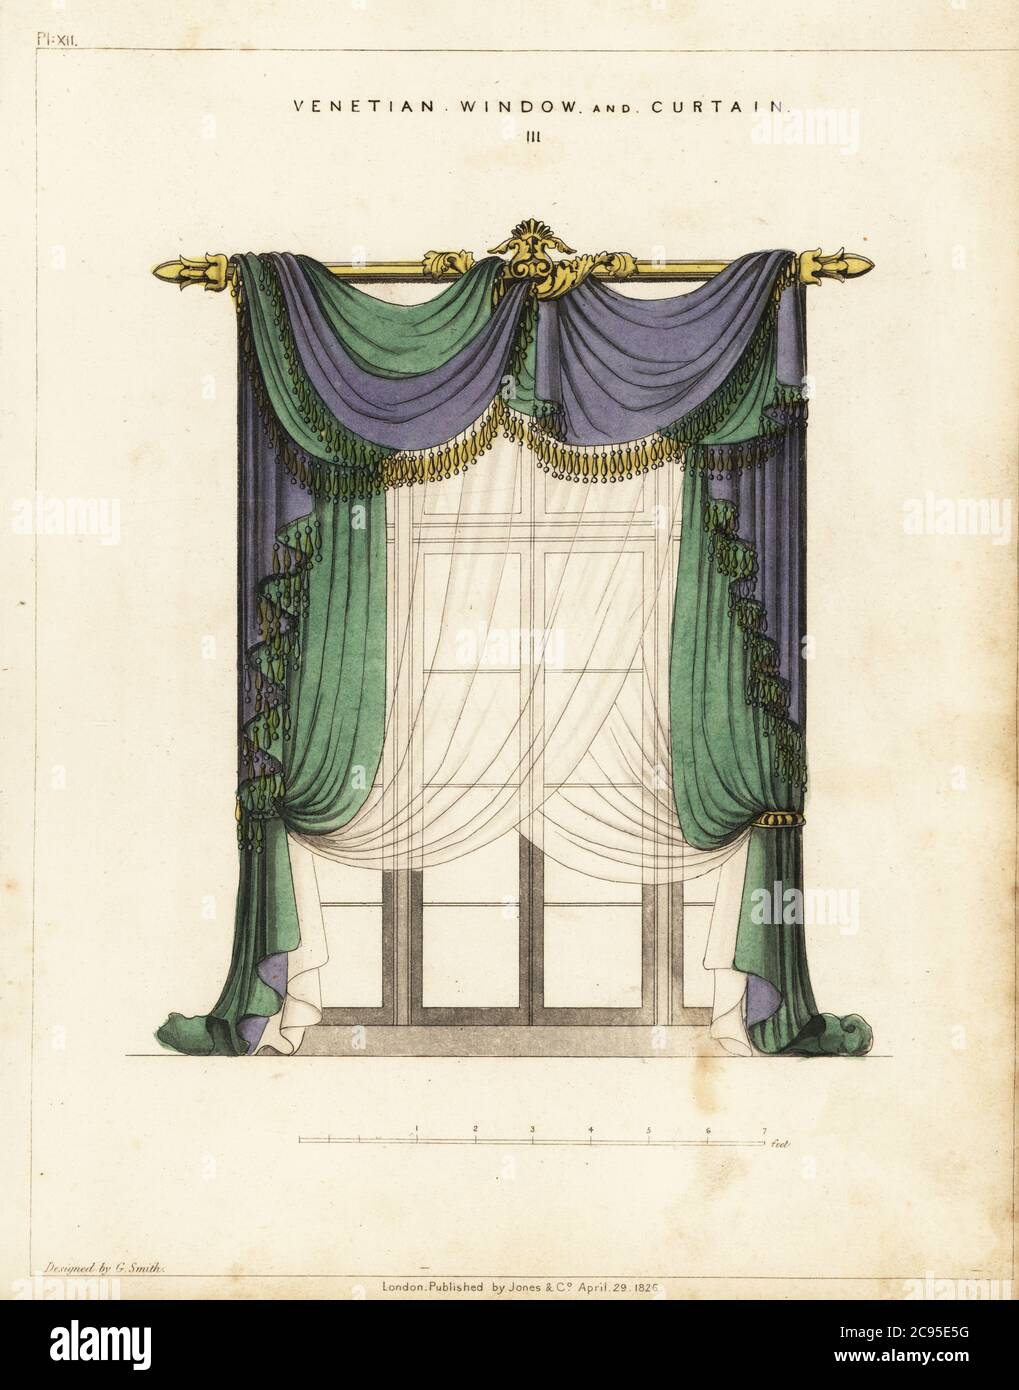 https www alamy com venetian window and curtain regency style blue and green fringed curtains hanging from a gilt curtain rod with transparent curtains over the window handcoloured copperplate engraving from george smiths the cabinet maker and upholsterers guide jones and co london 1828 george smith was upholsterer and furniture draughtsman to his majesty the prince of wales later king george iv circa 1786 1826 image367070524 html